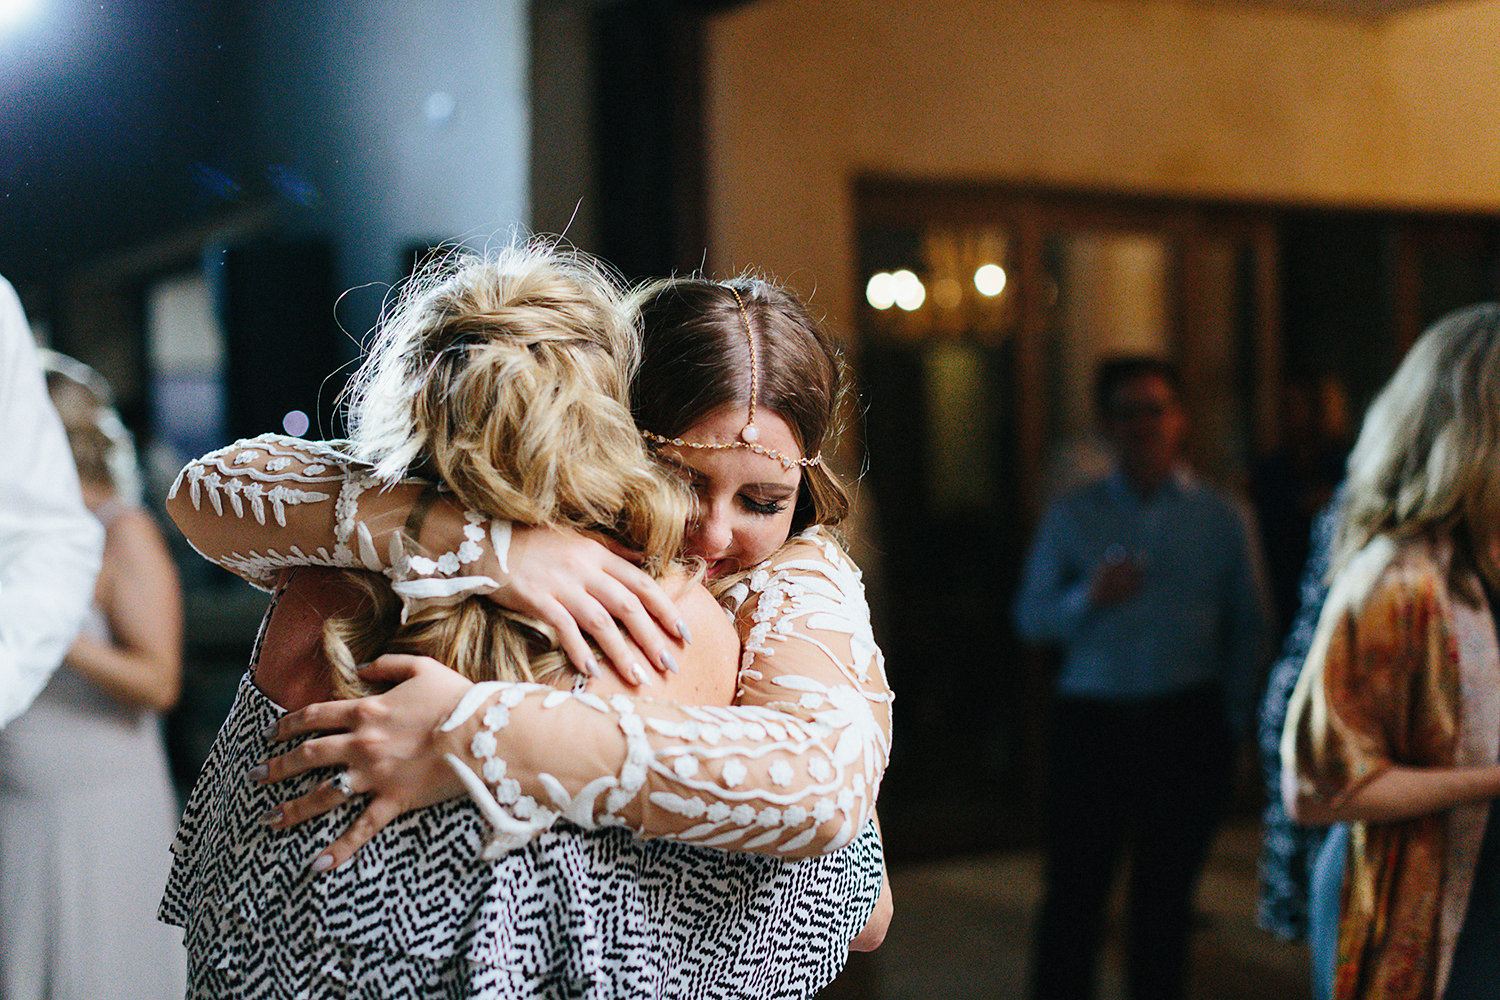 cabo-san-lucas-junebug-weddings-green-wedding-shoes-toronto-wedding-photographer-3b-photography-ventanas-private-club-mexico-reception-night-mother-and-son-first-dance-real-moments-bride-crying-real-emotion-hugging.jpg